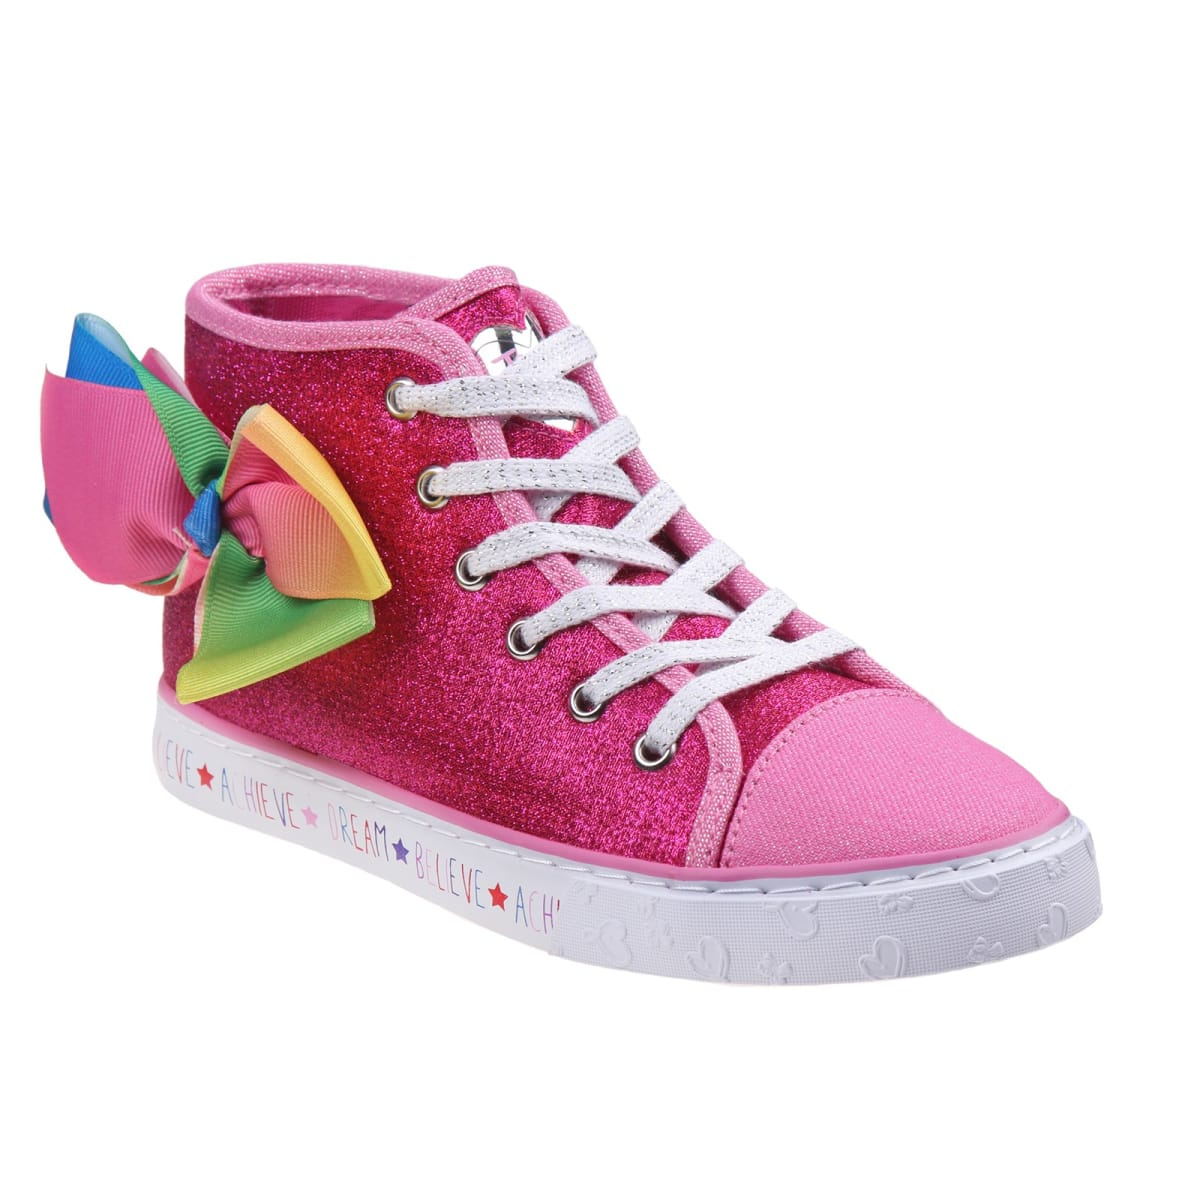 outlet store 60e97 750ac Jojo Siwa High Top Girls Sneakers   Free Shipping   Jane